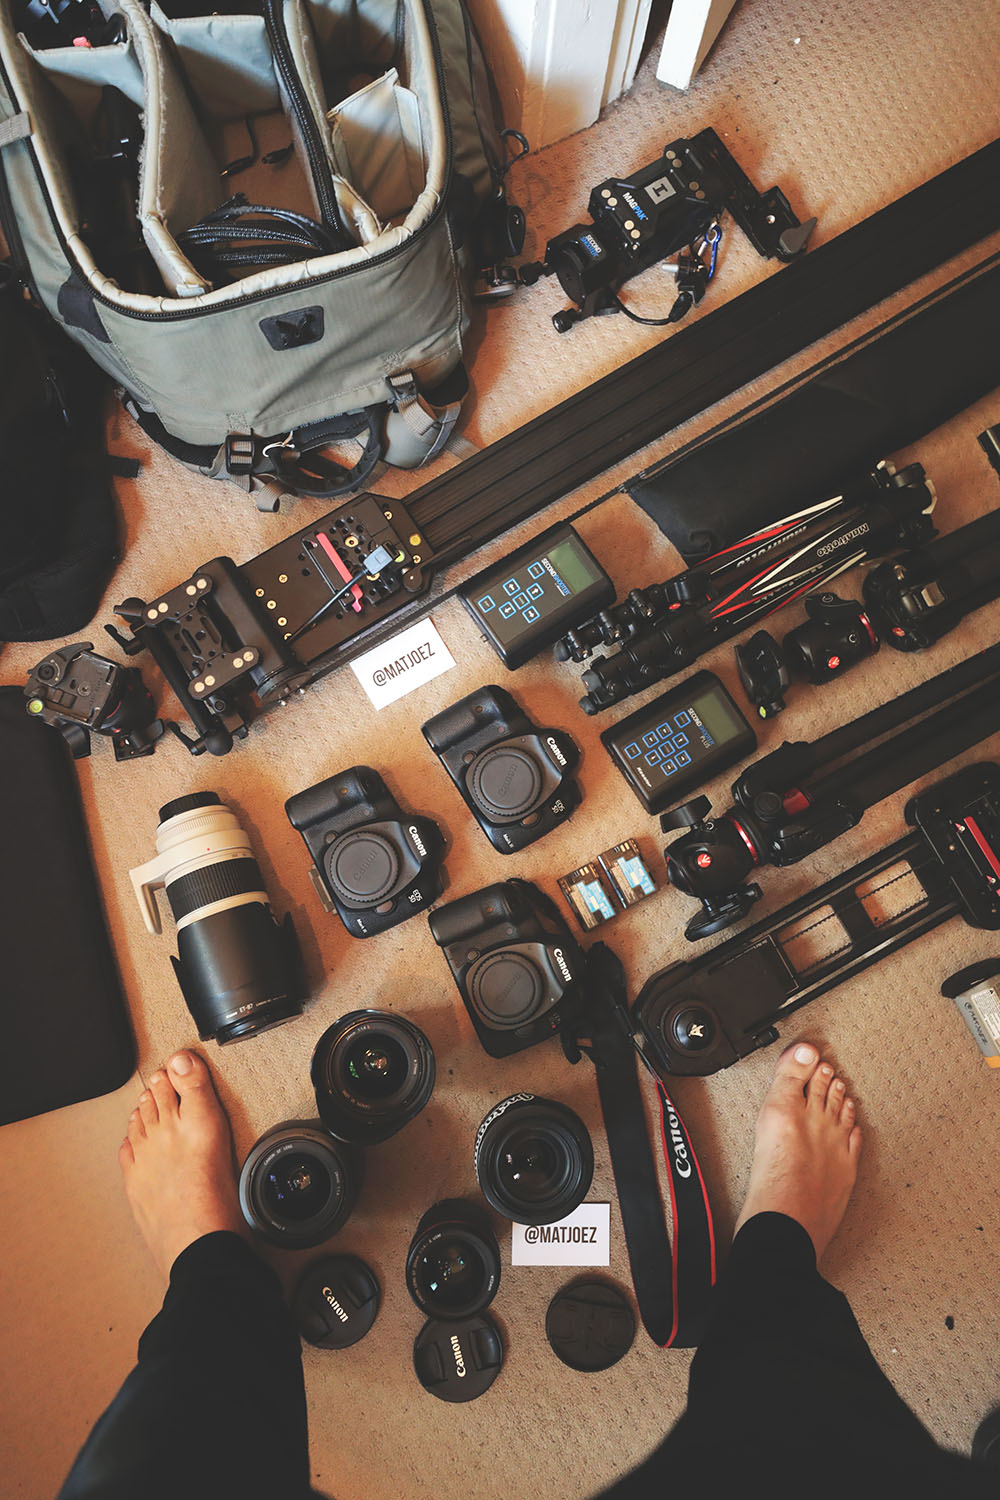 Flat lay of camera gear used for a professional astro photography shot